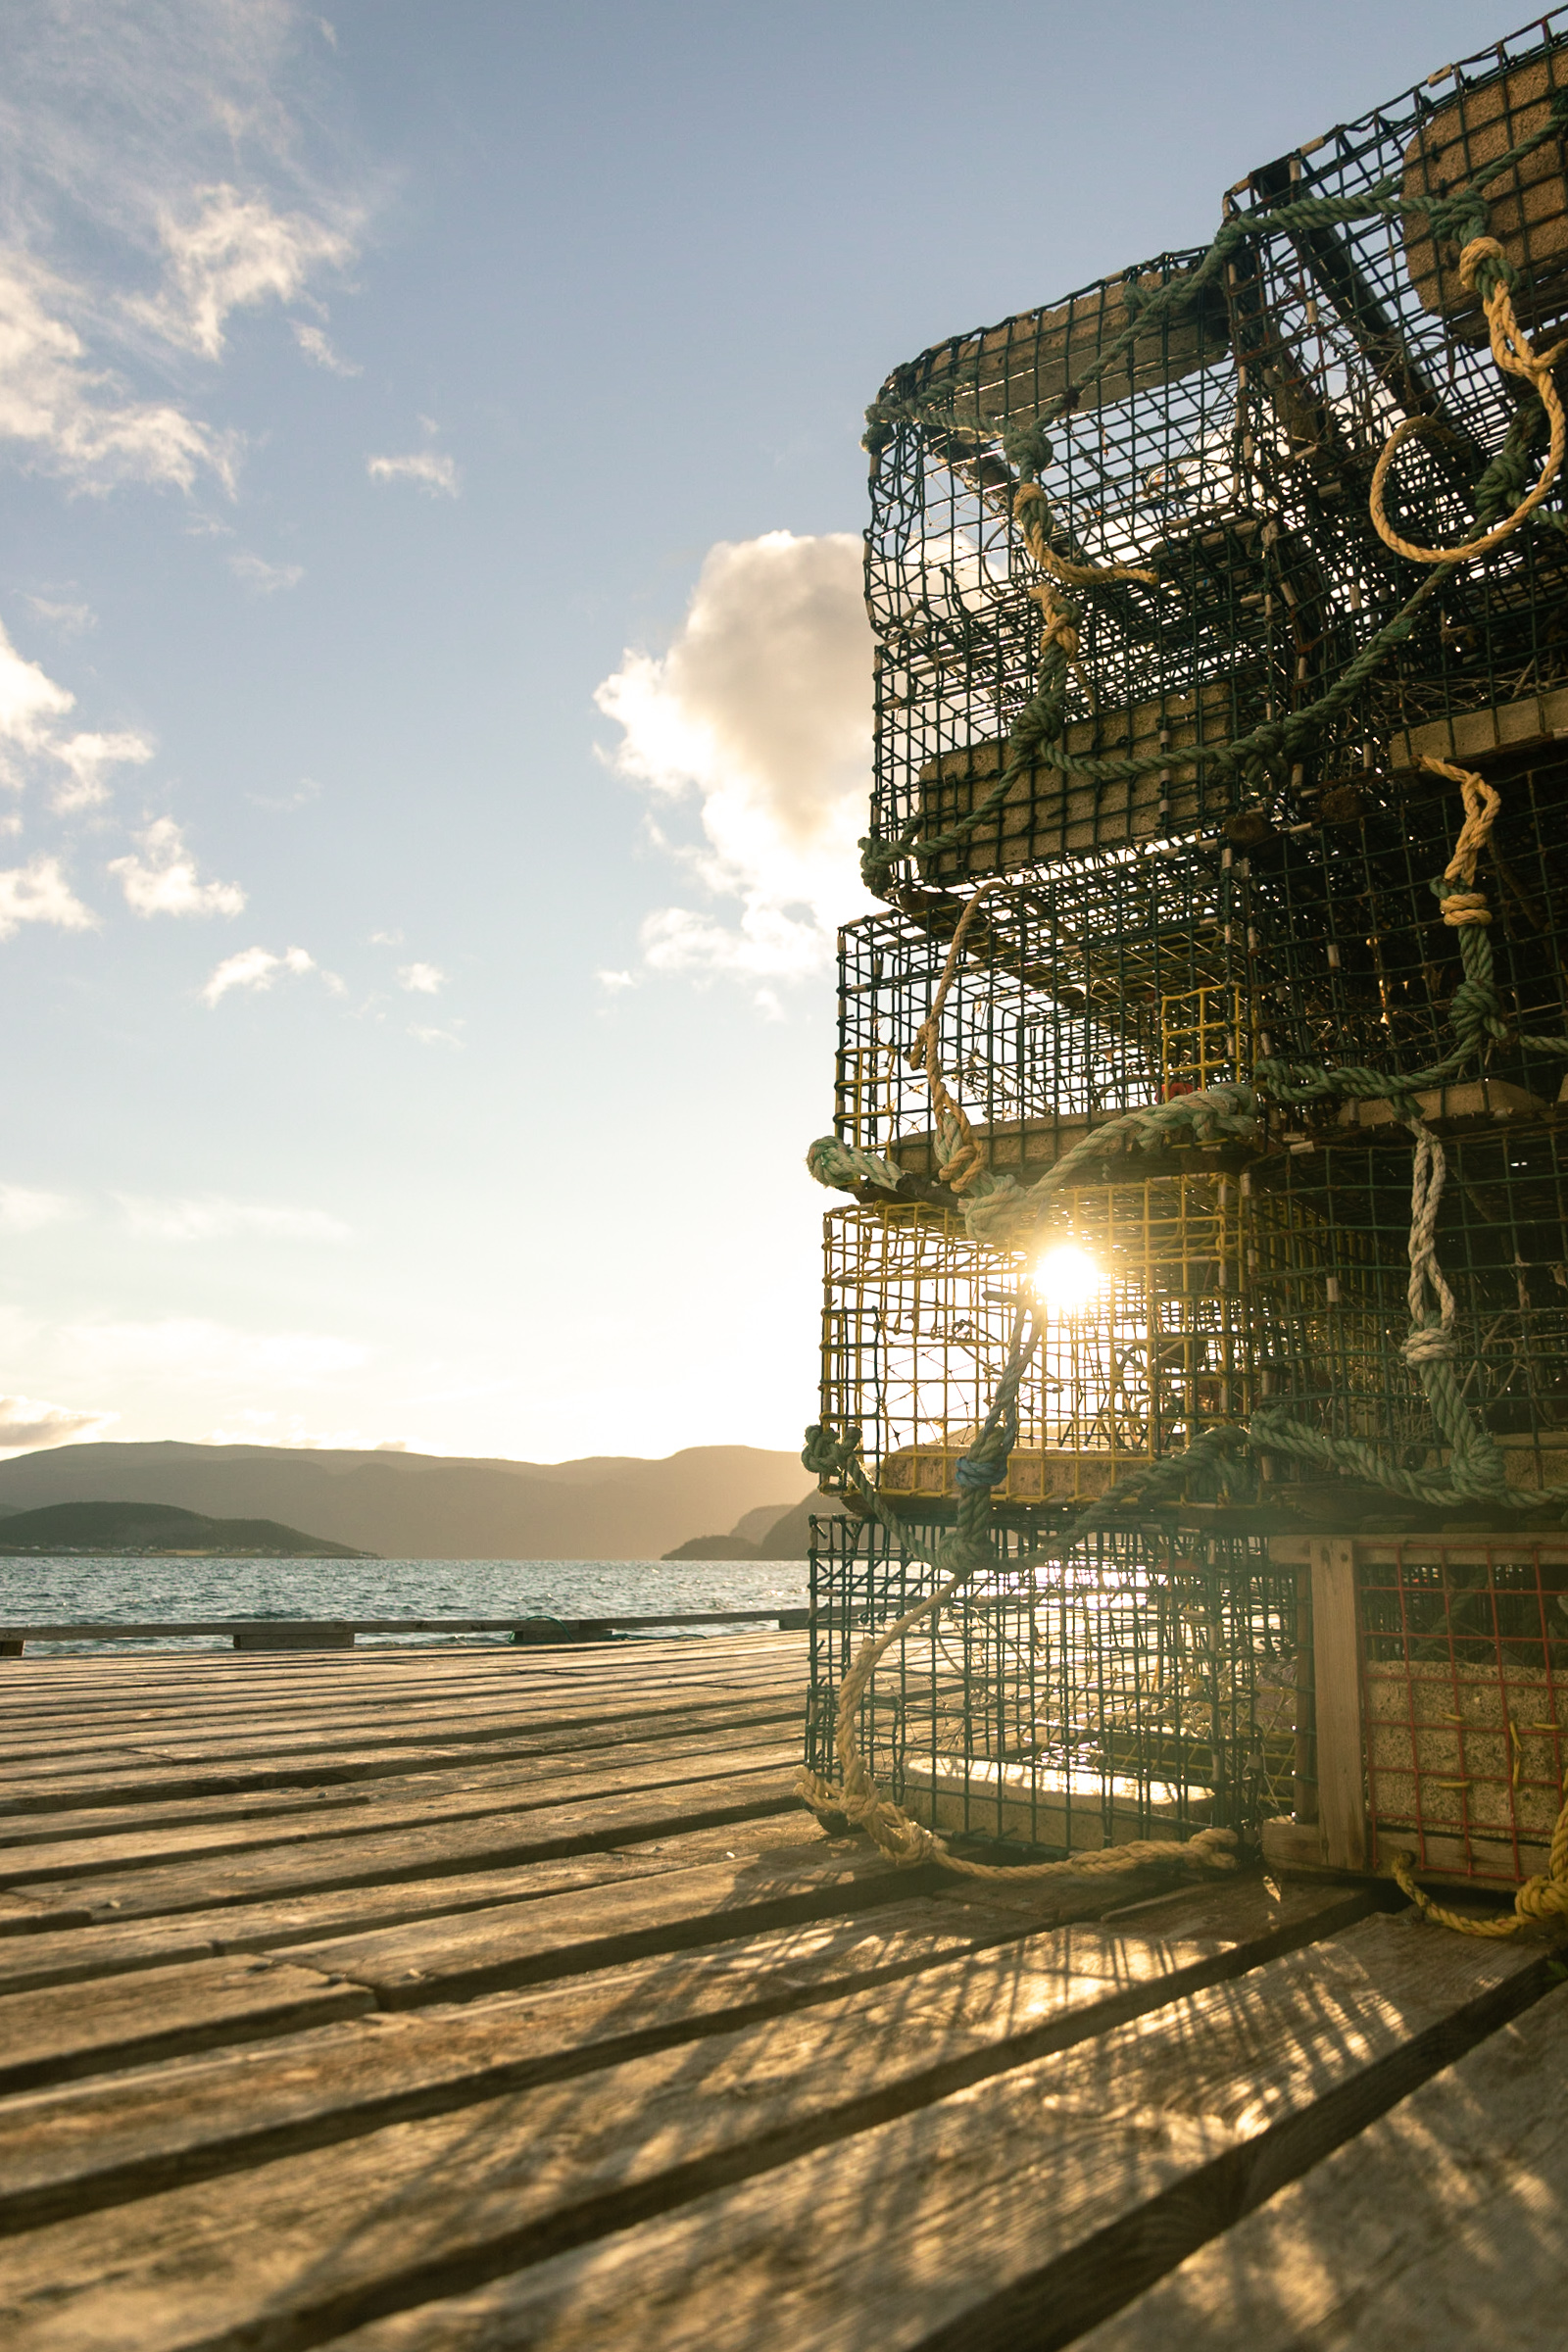 sunrise in Newfoundland peaking through lobster crates